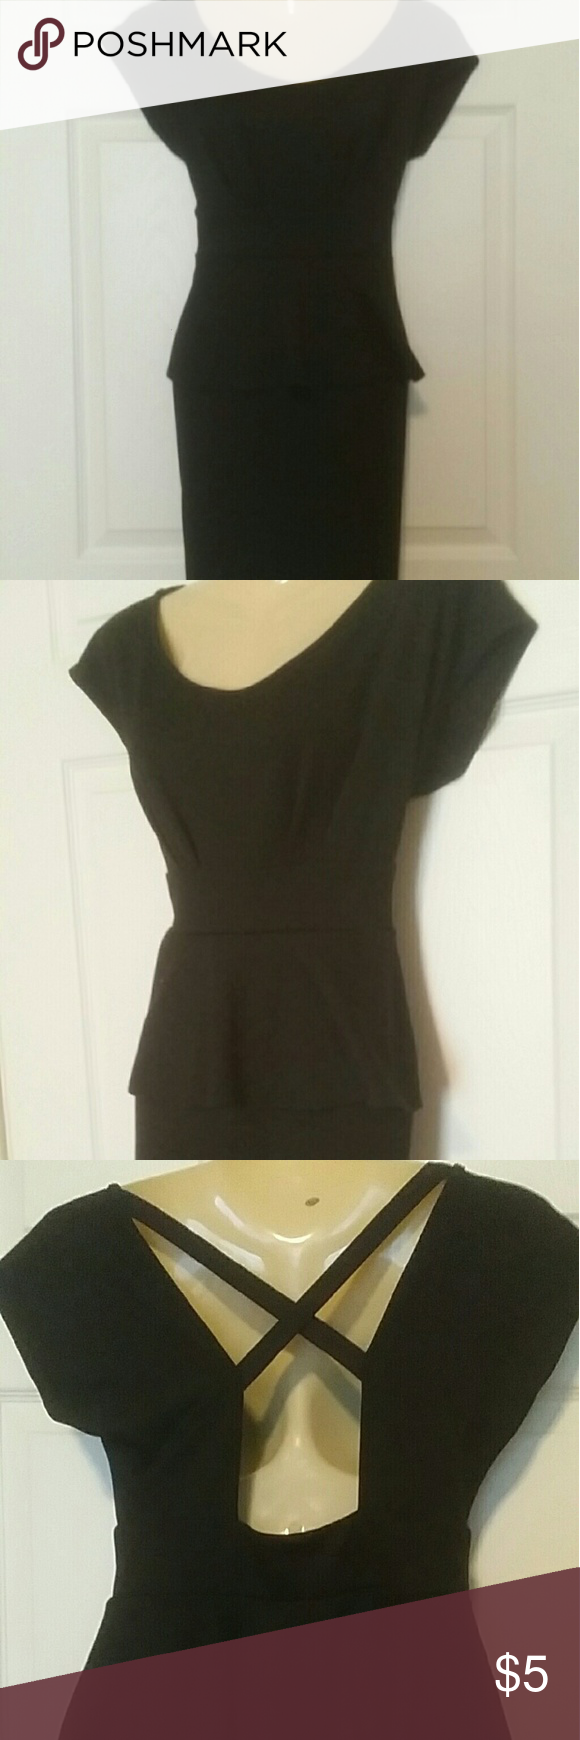 Wet Seal Black business look dress